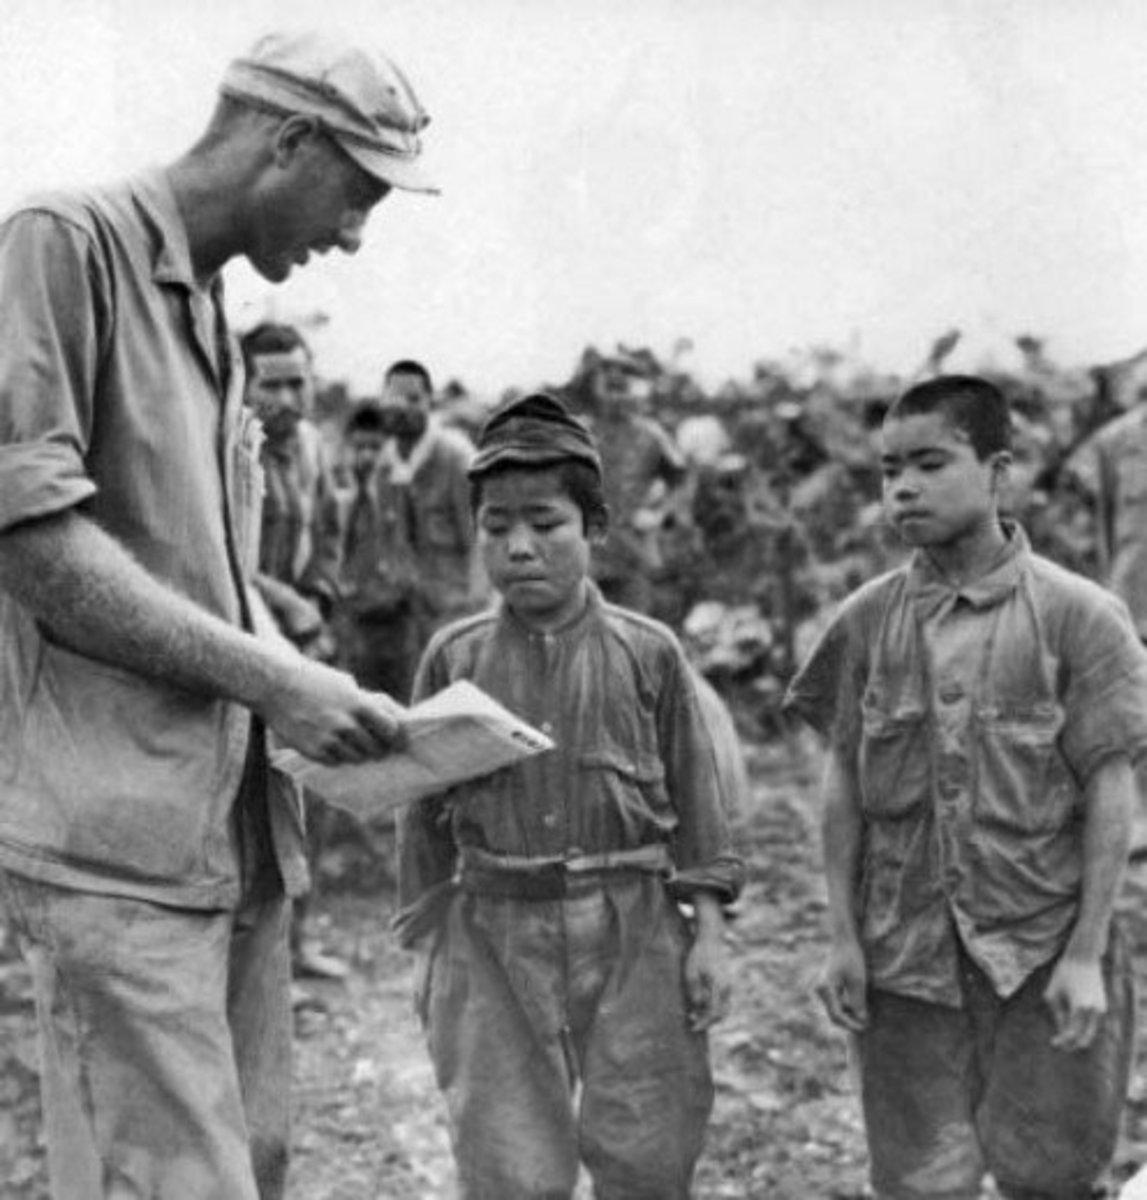 The Japanese Imperial Army mobilized 1,780 middle school boys aged 14–17 years into front-line-service.